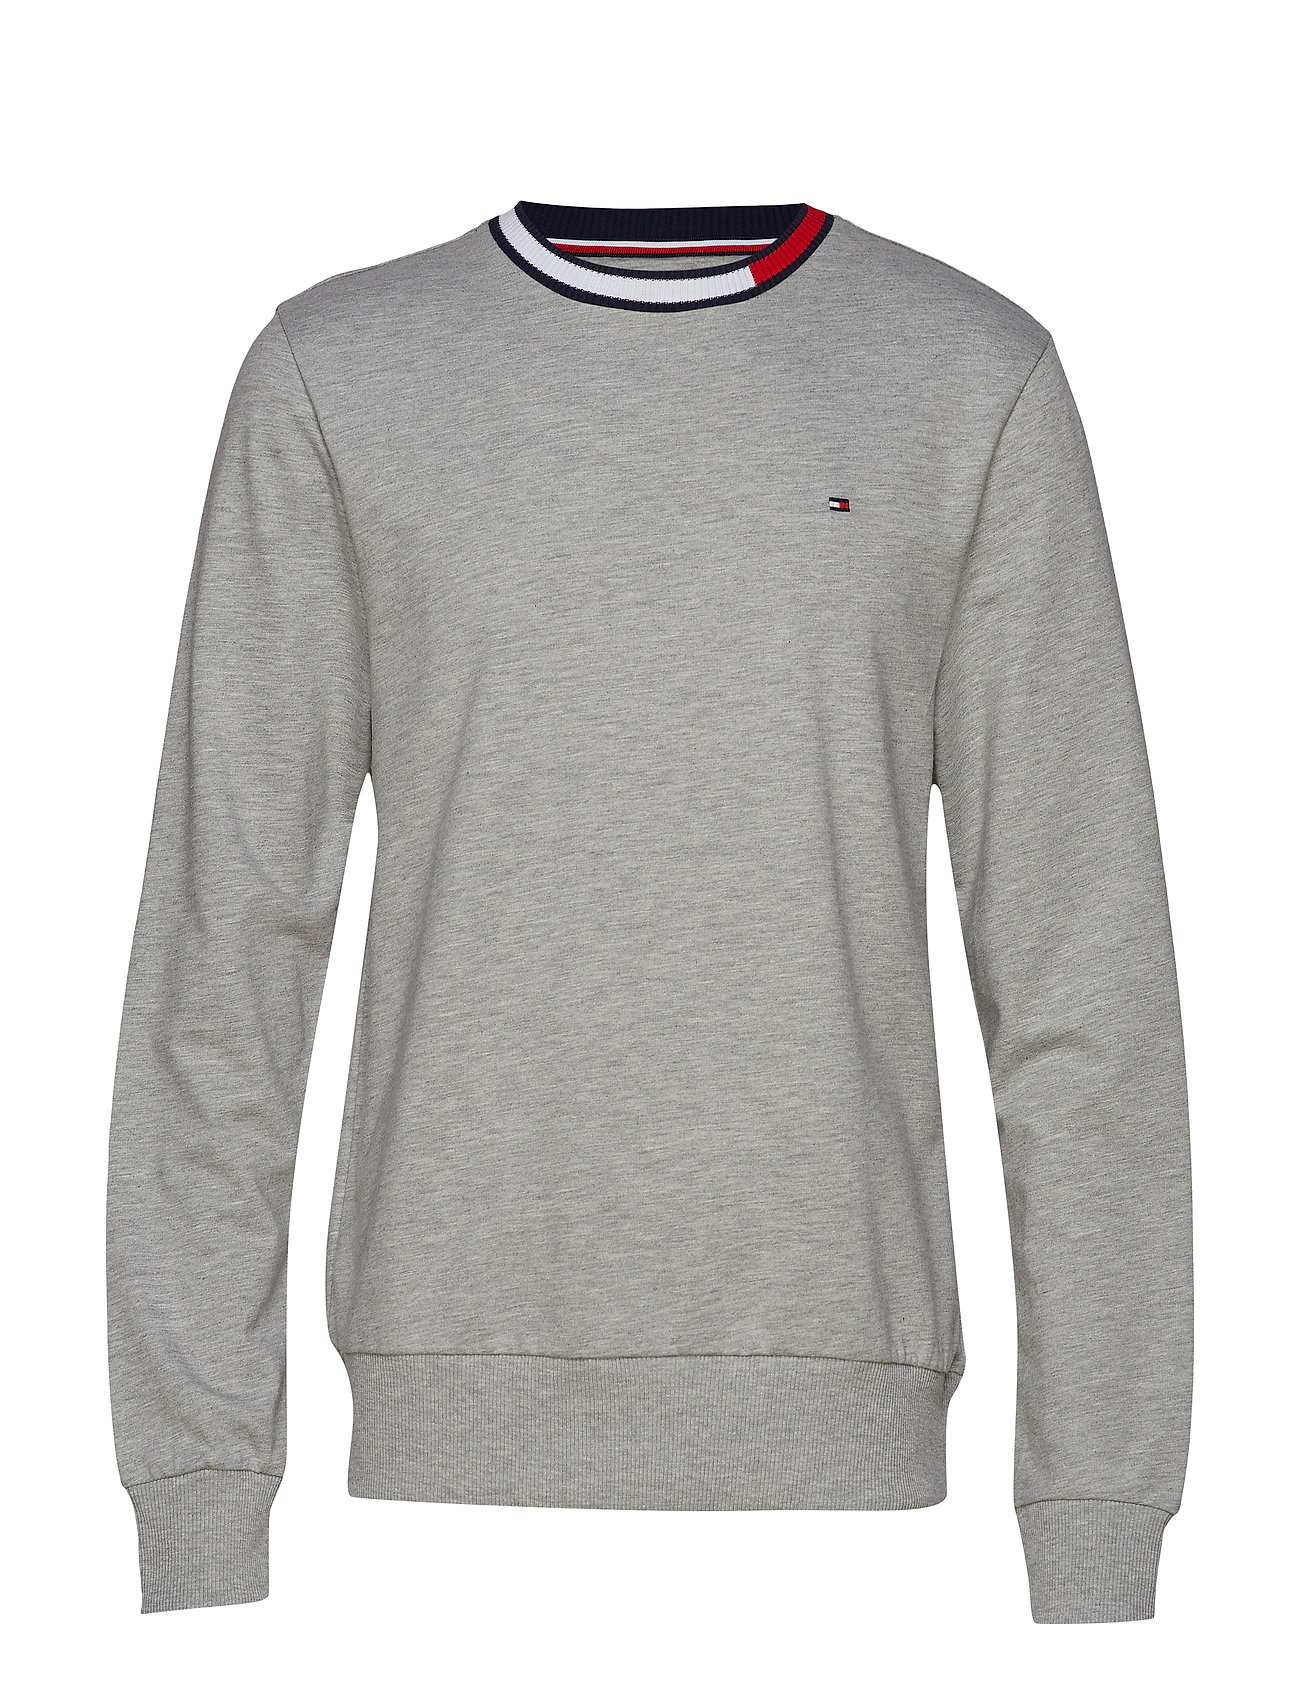 Tommy Hilfiger TRACK TOP LS HWK - GREY HEATHER